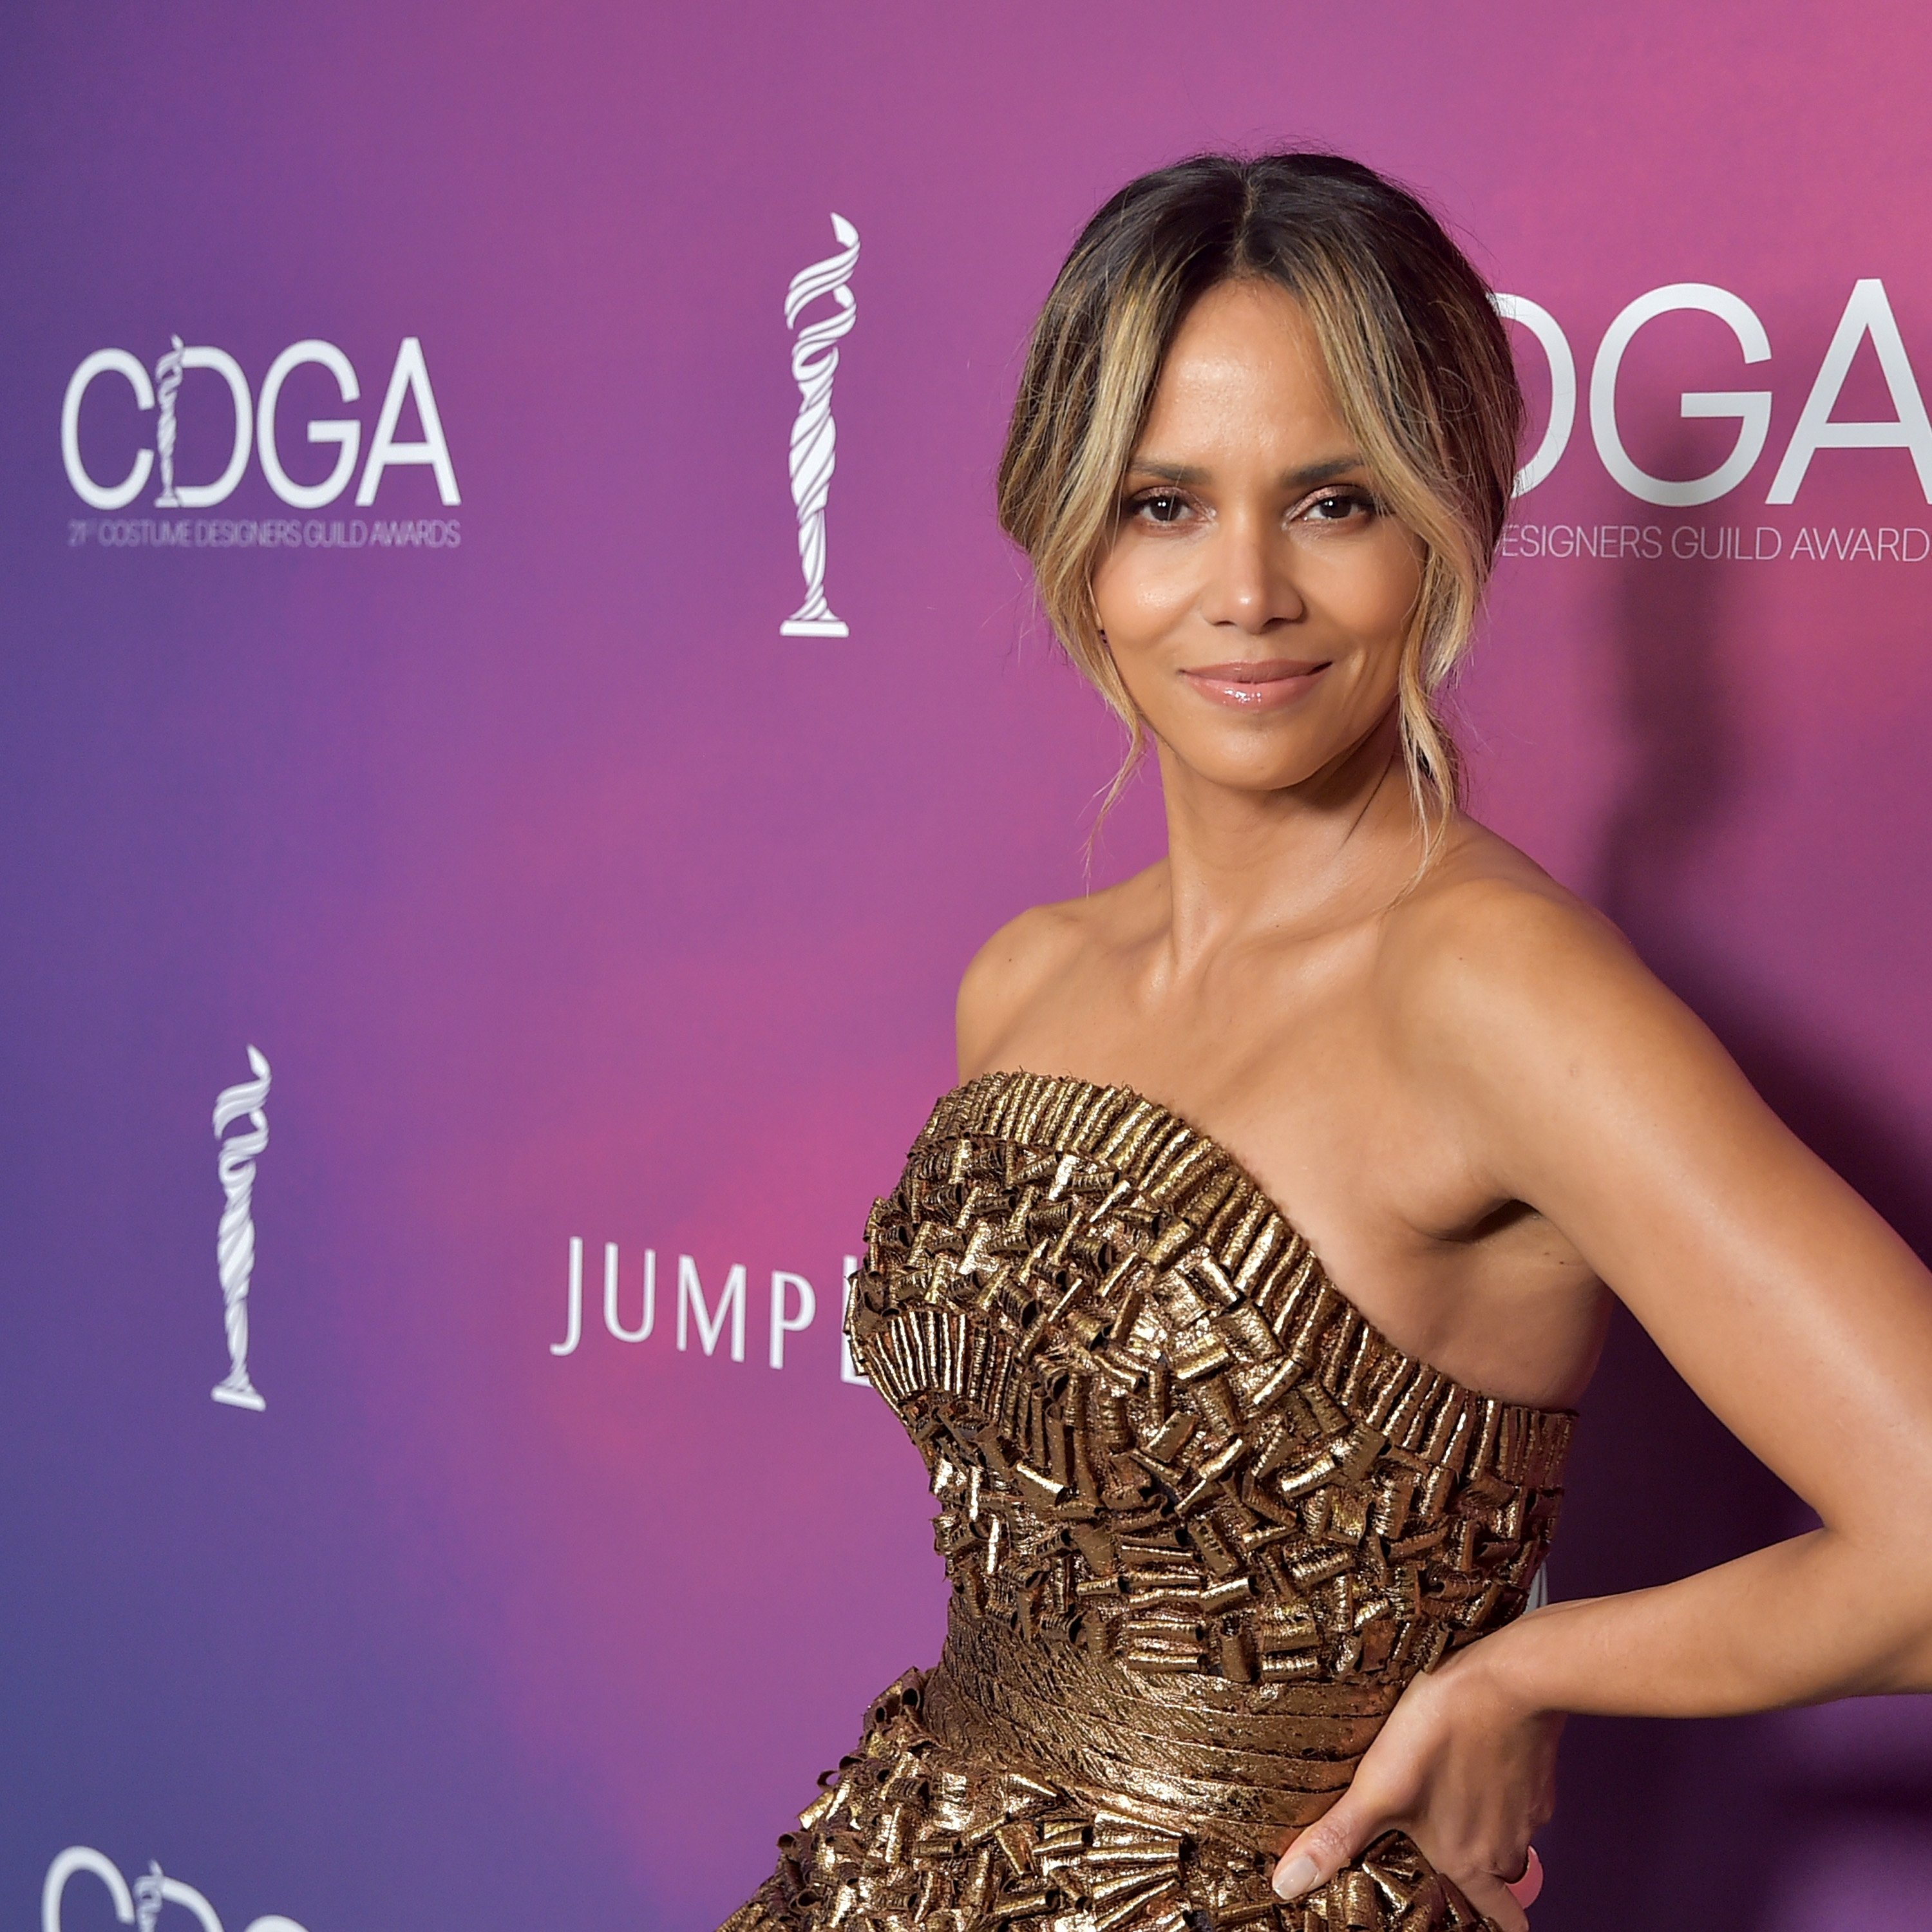 Halle Berry attends The 21st Costume Designers Guild Awards on February 19, 2019, in Beverly Hills, California. | Photo: Getty Images.